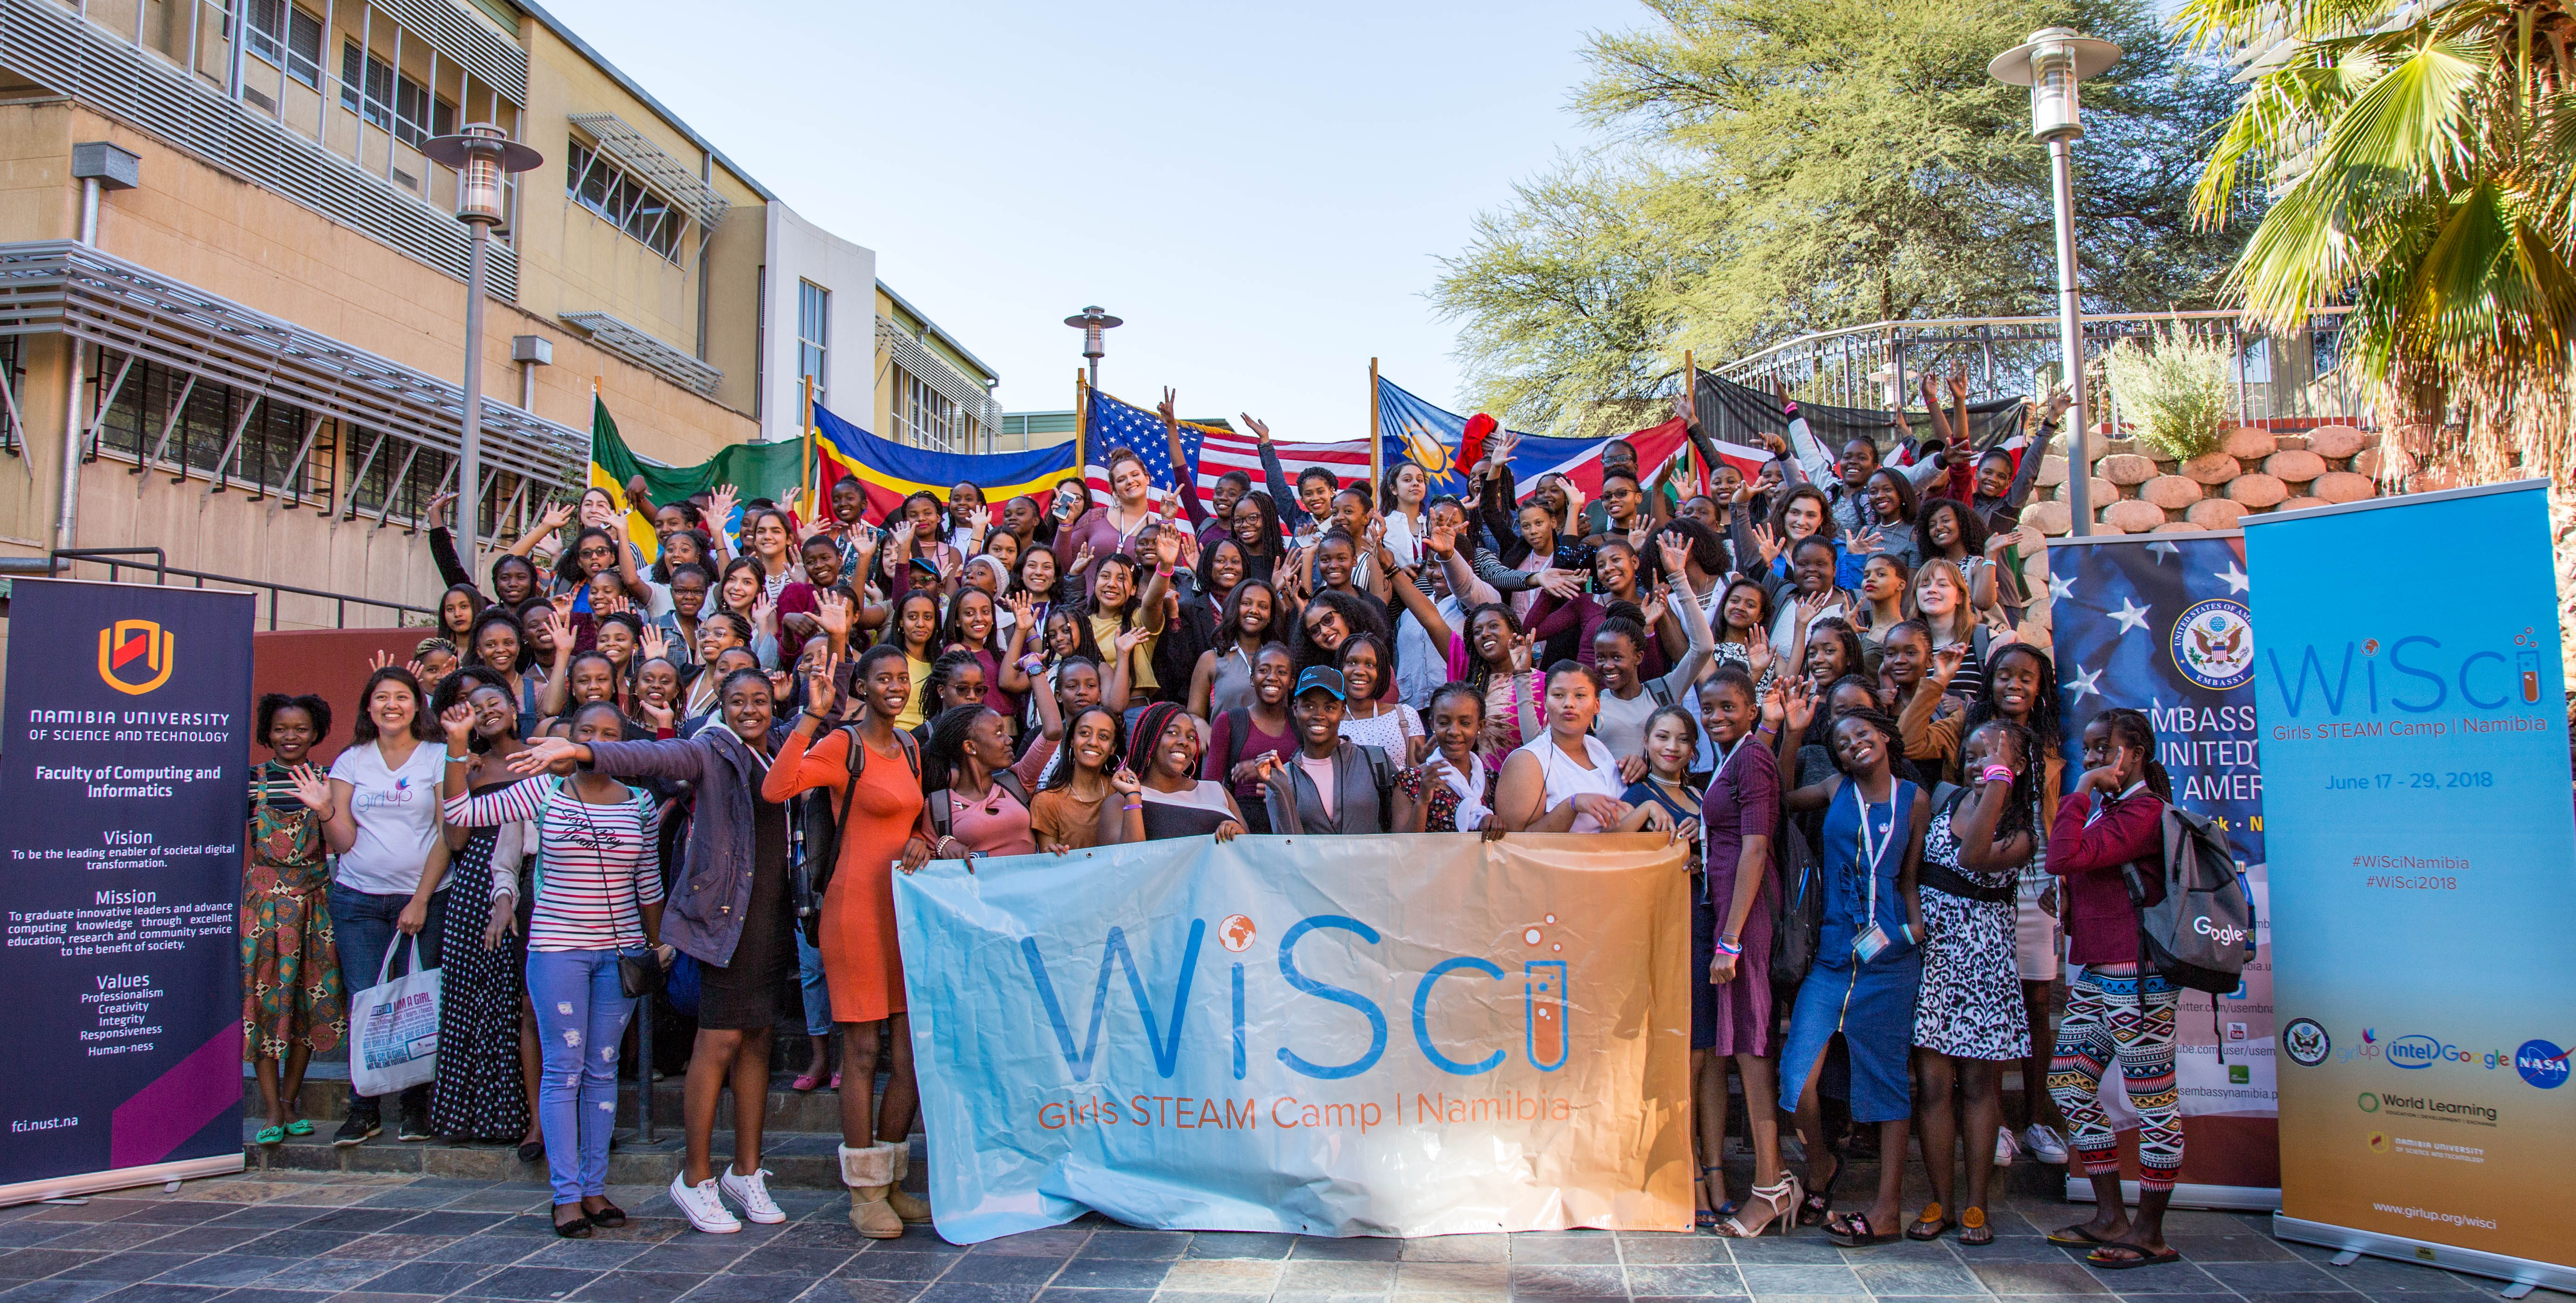 5 Amazing Innovations From the WiSci STEAM Camp